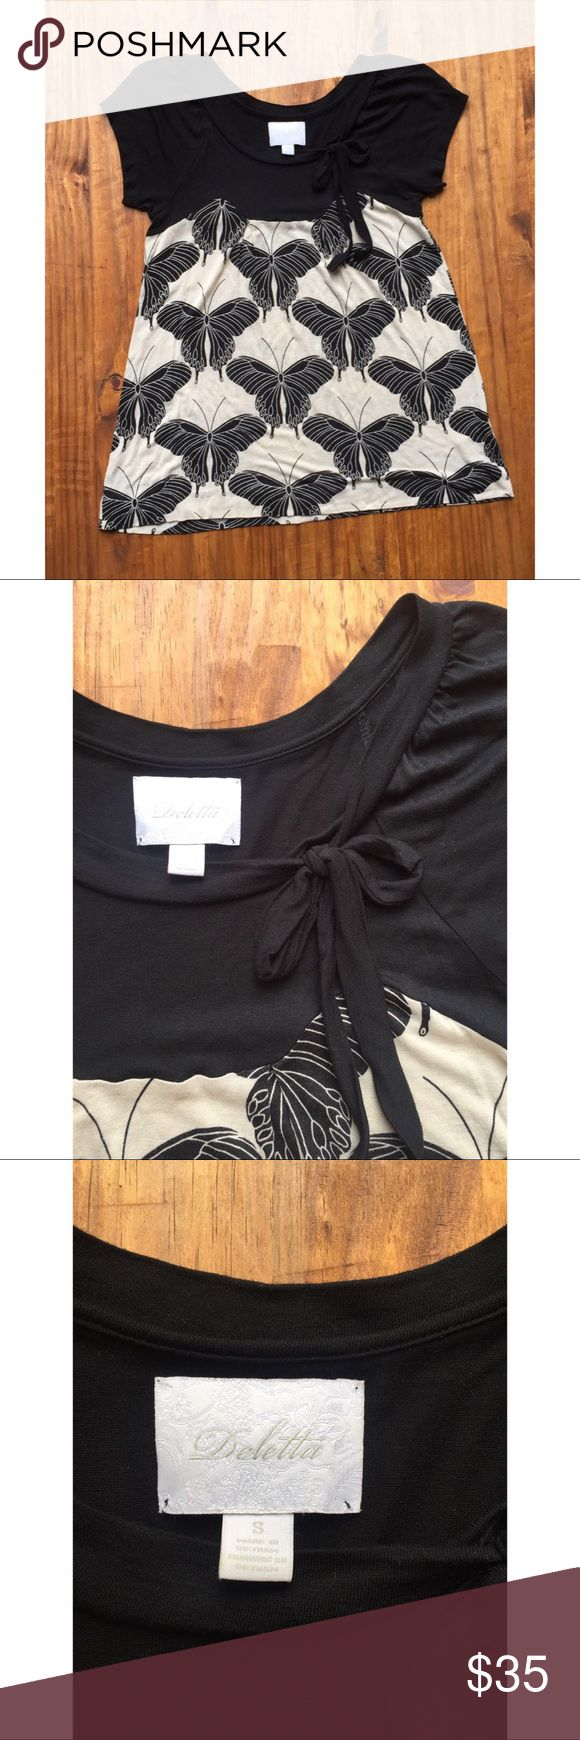 🦋Deletta Butterfly Black and Nude Cap Sleeve Top This perfect Anthropologie top will look so great on that perfect lady, or that perfect grade school teacher during whose children would love to see this shirt! Excellent Used Condition. No pilling, stains, or rips. Offers Welcome! Anthropologie Tops Tees - Short Sleeve